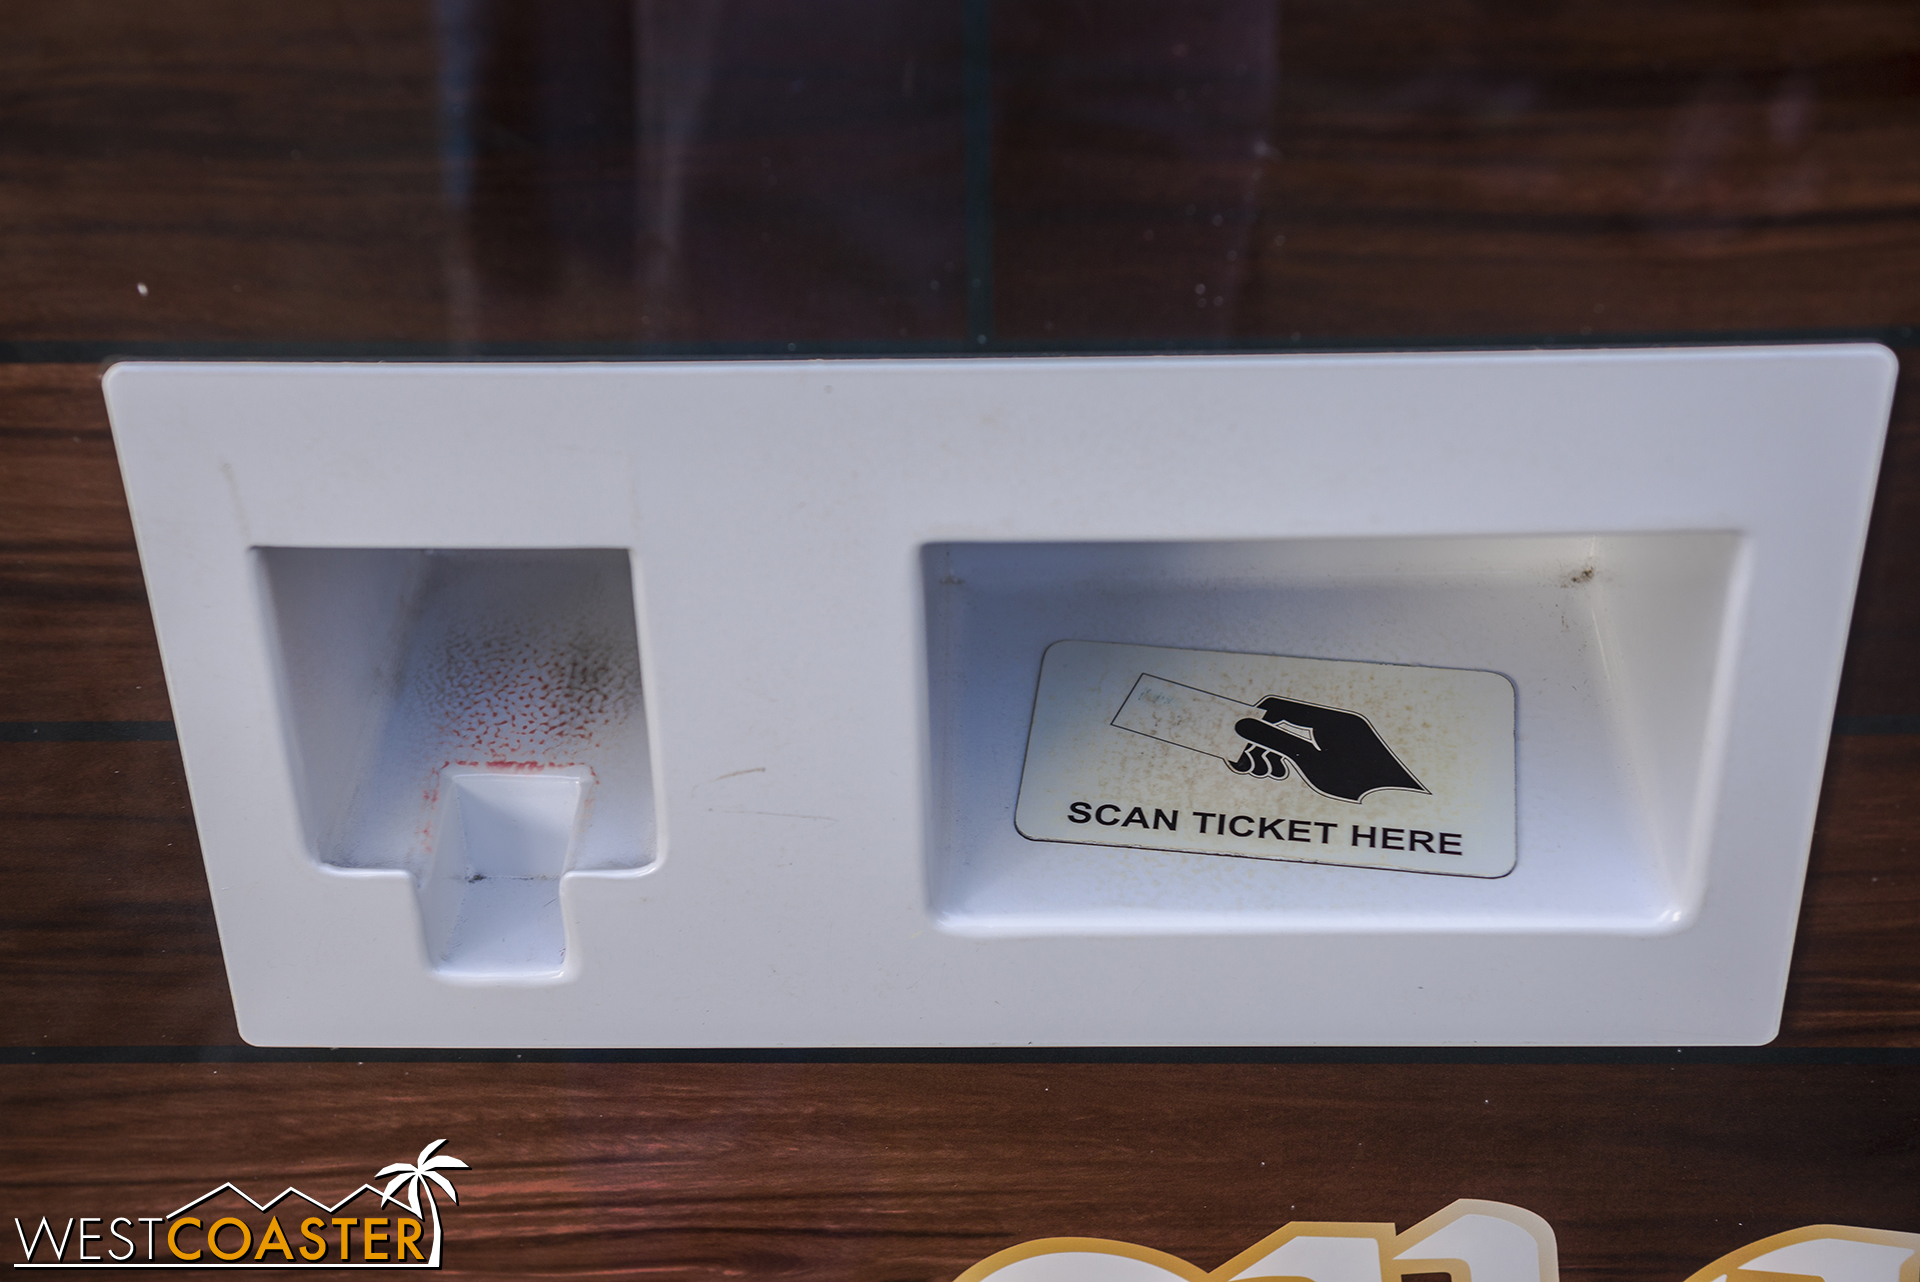 What's nice is that they only require a bar code scan instead of a ticket insertion--a feature that Disney parks everywhere else in the world have had for years.